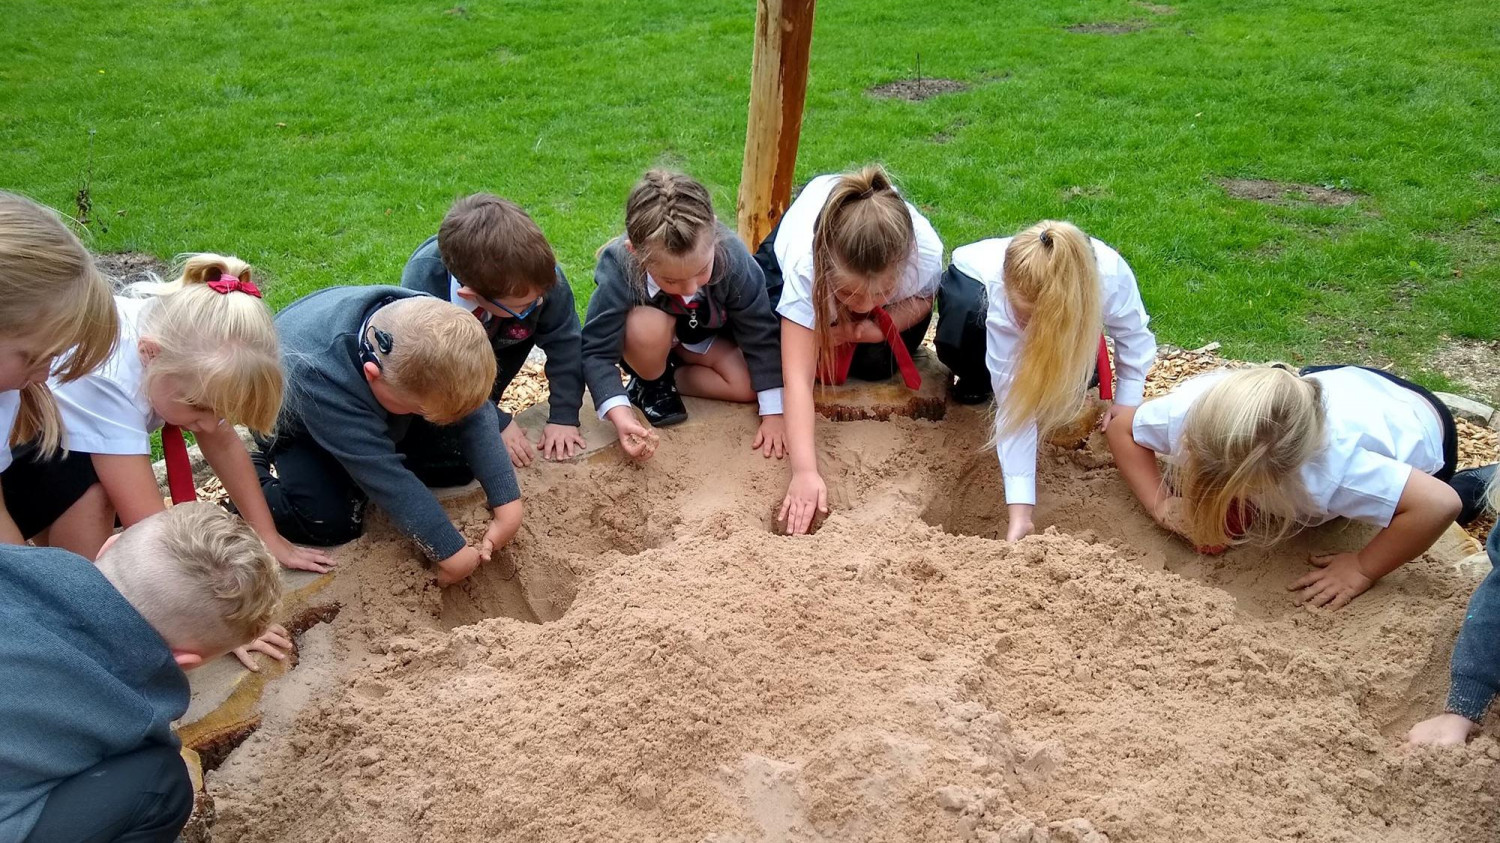 Image of a group of children playing in a sand box